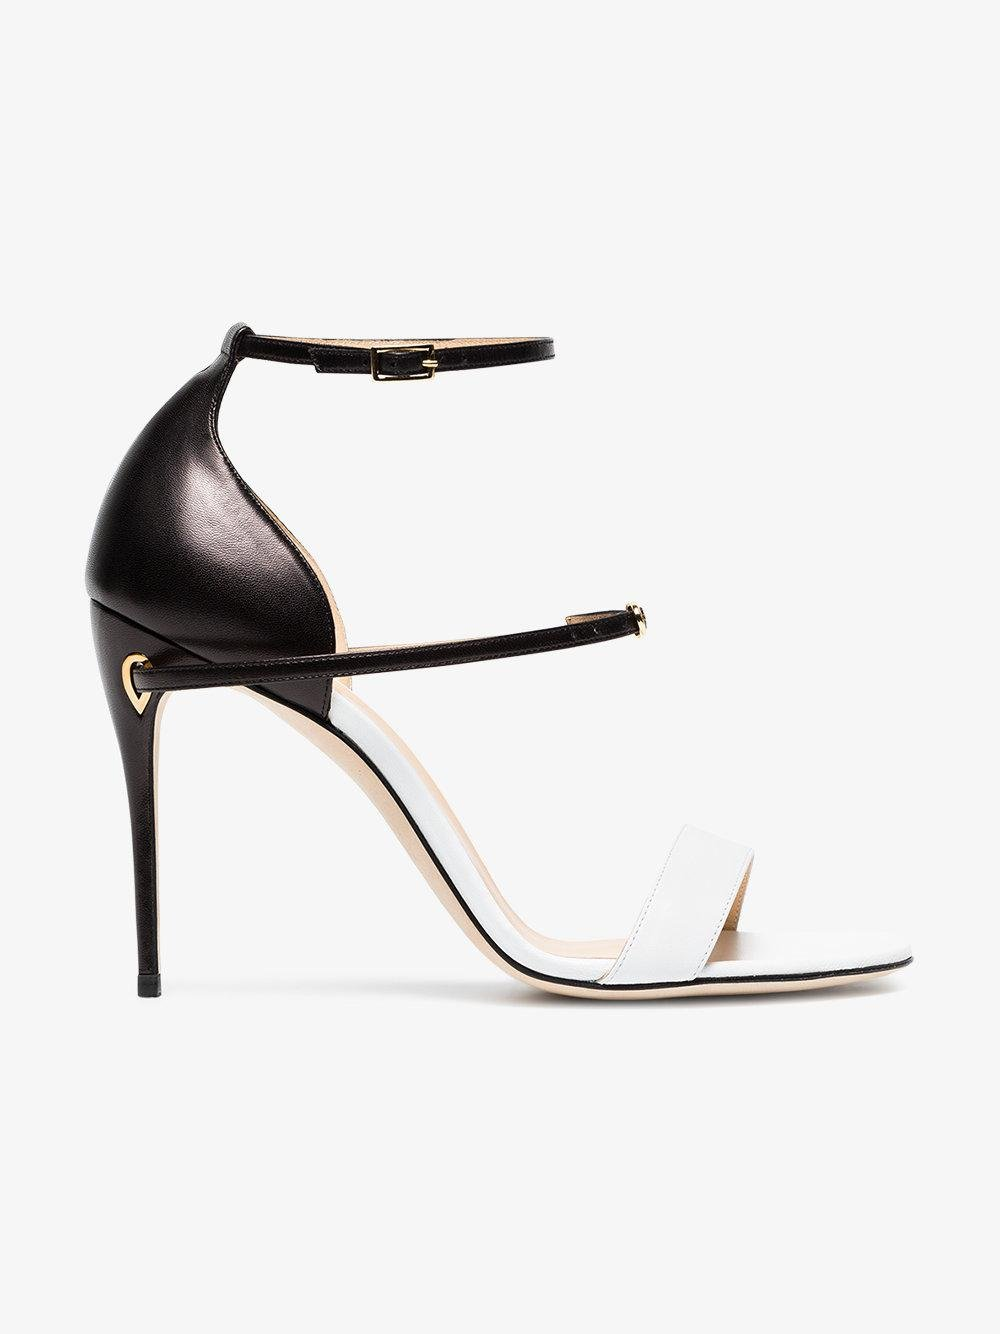 black and white Rolando 105 leather sandals - Unavailable Jennifer Chamandi um8TgXuU2v